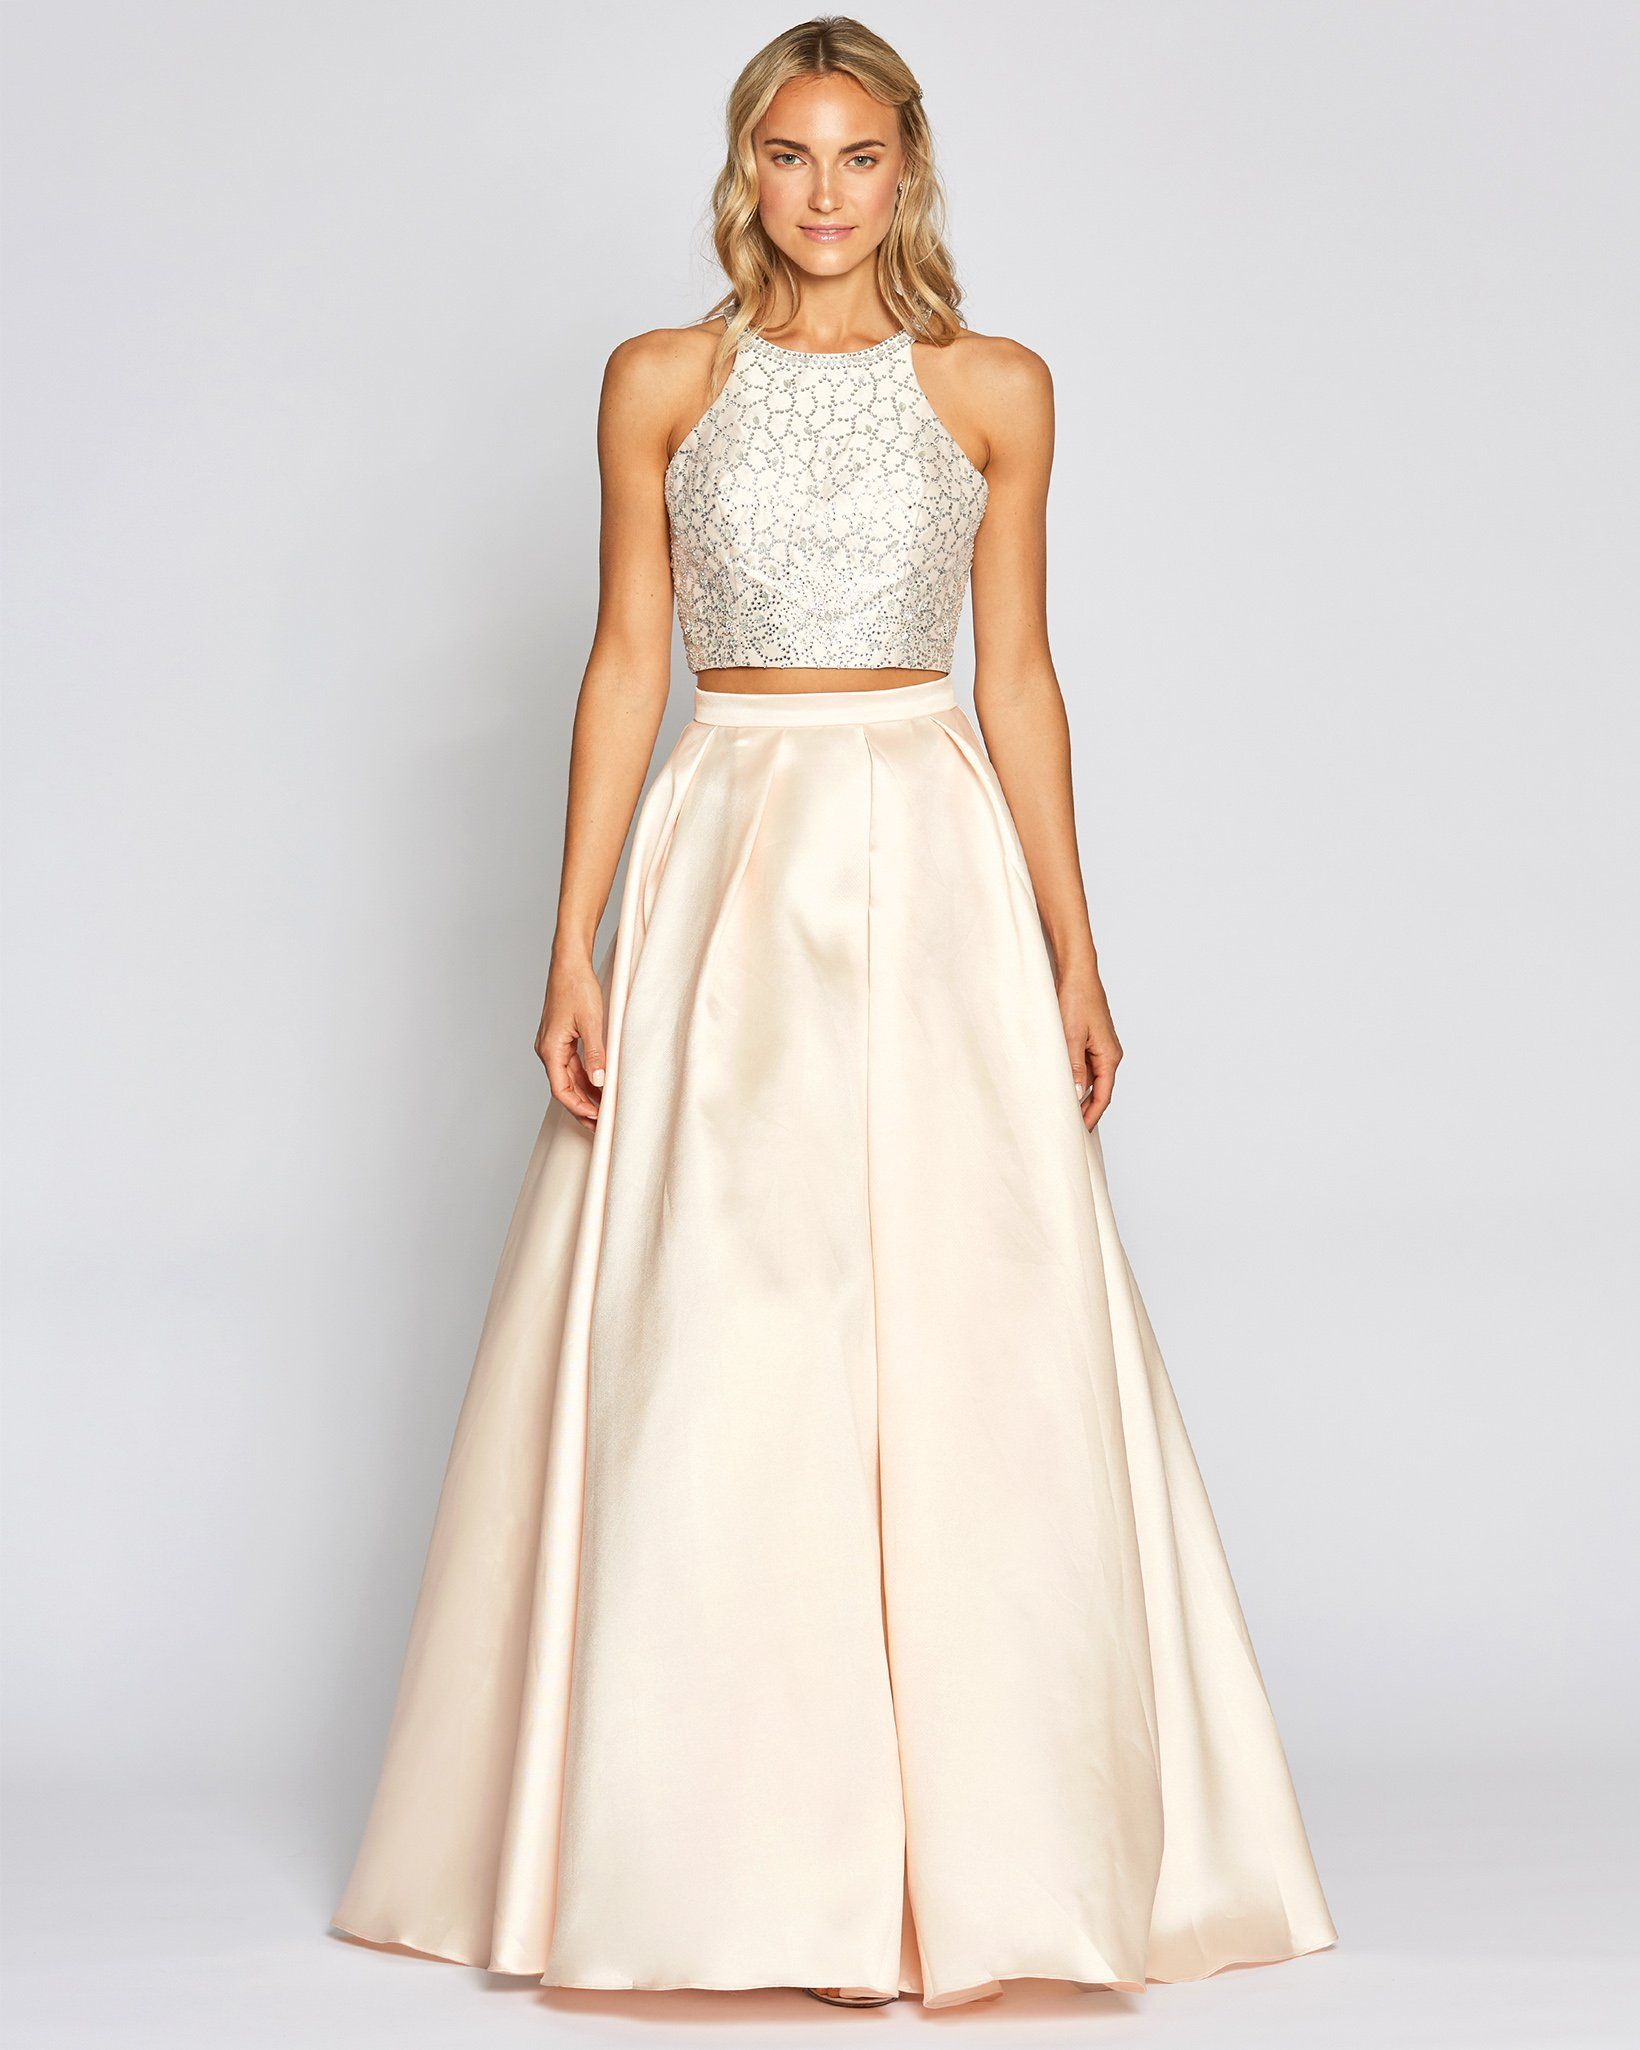 Apricot Two Piece Halter Ball Gown